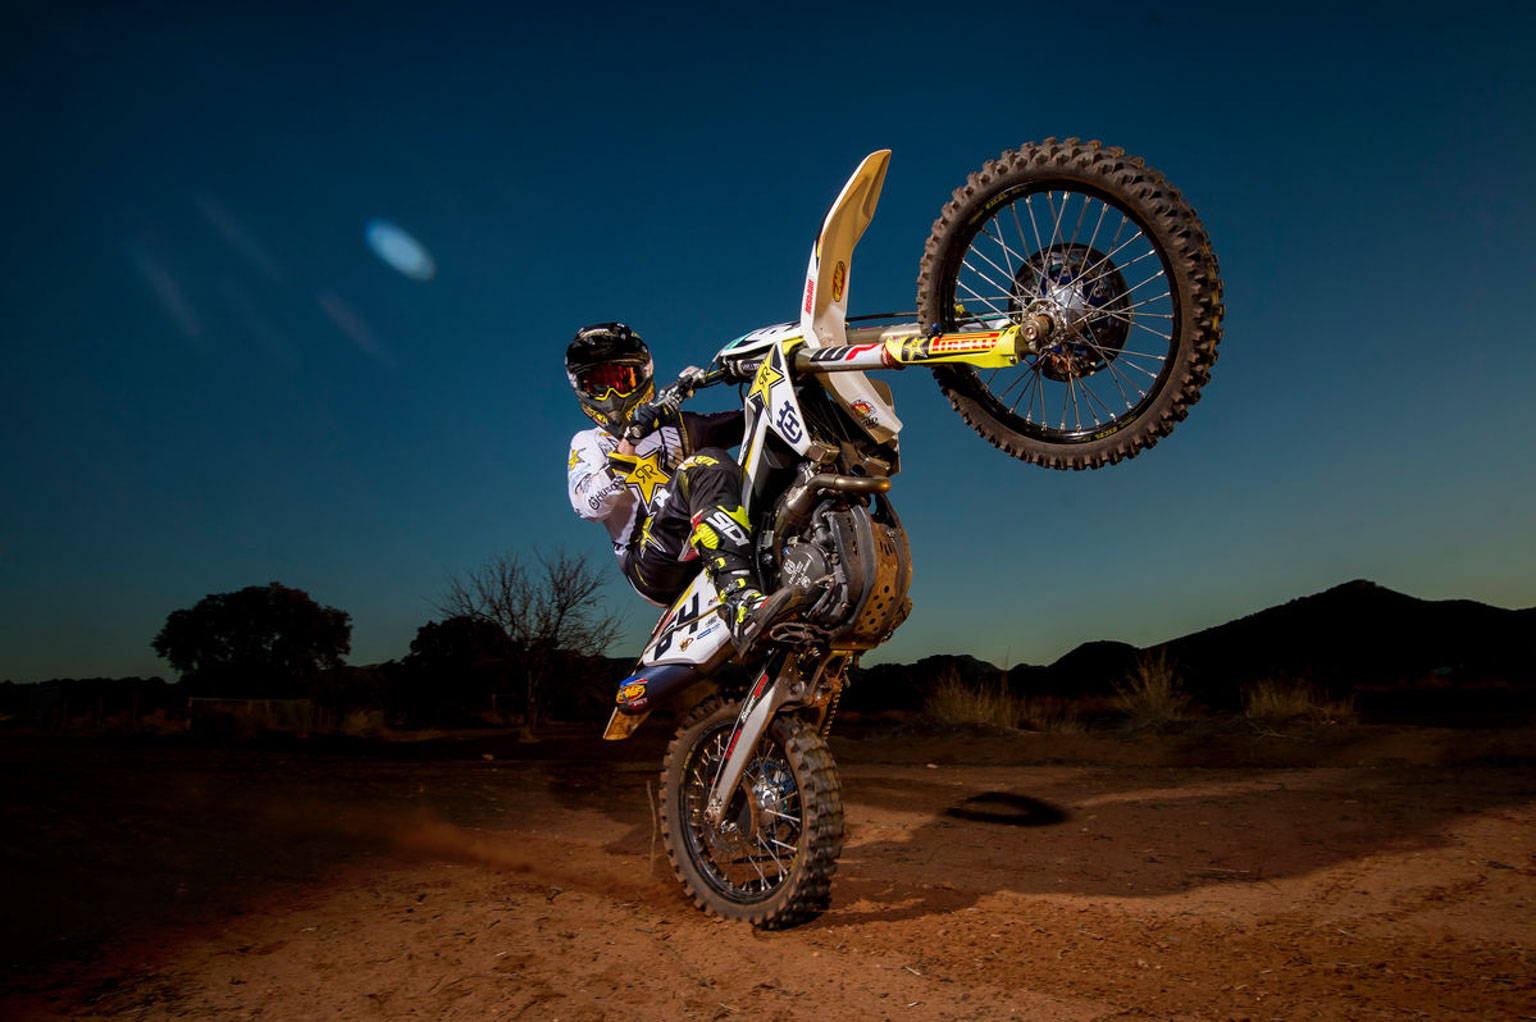 42072_Covington_Rockstar Energy Husqvarna Factory Racing_MX2_shotbybavo_5900